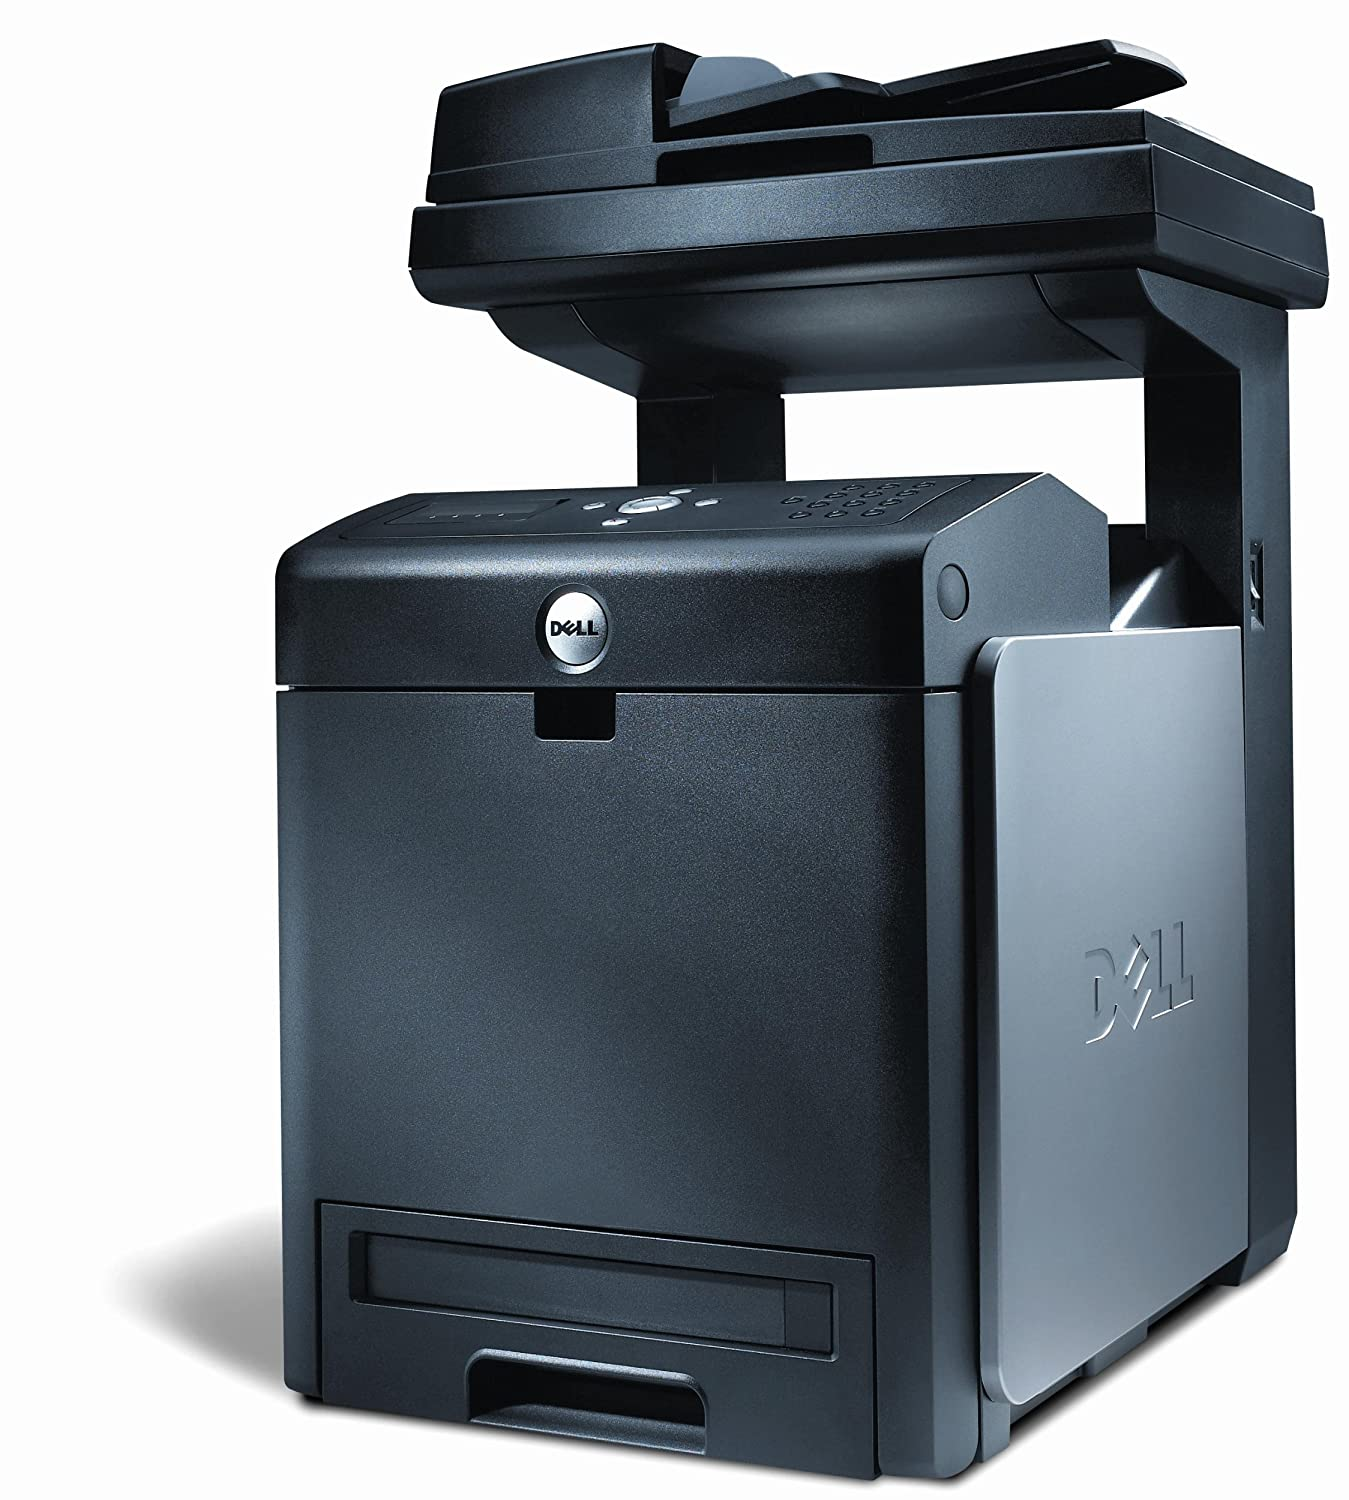 DELL PRINTER 3115CN DRIVER FOR WINDOWS MAC